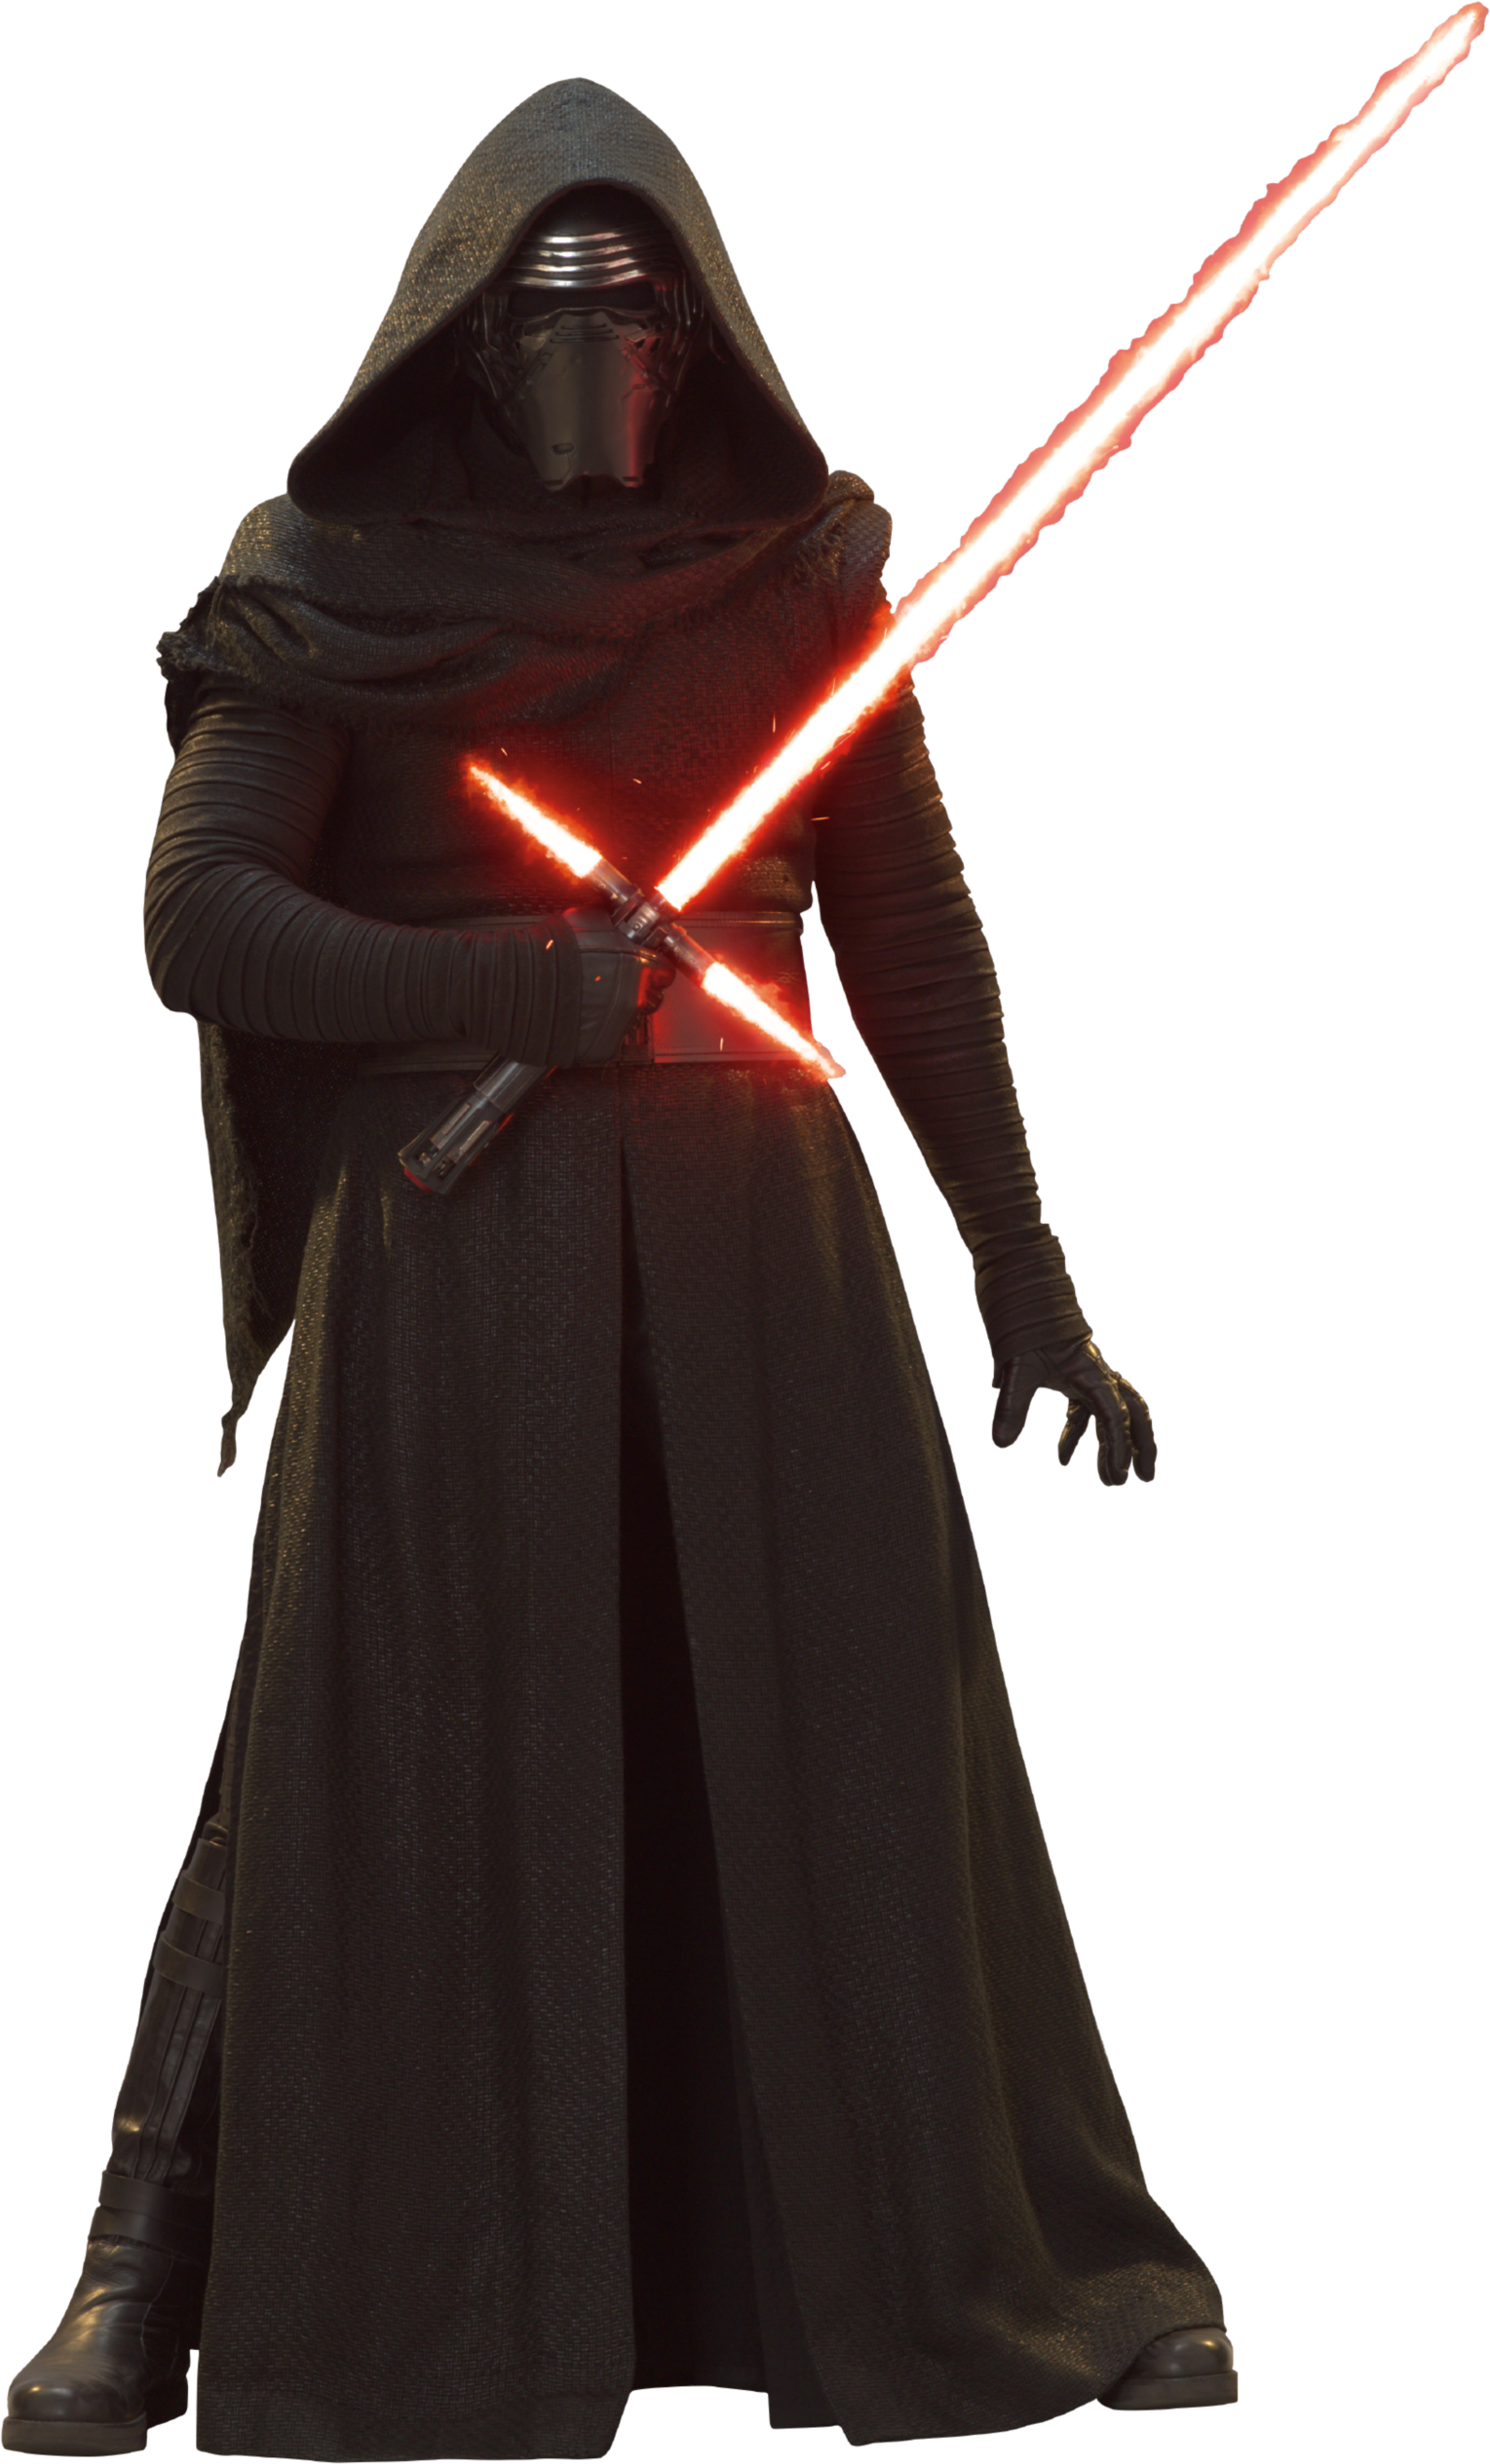 Star wars characters png. Kylo ren ep the